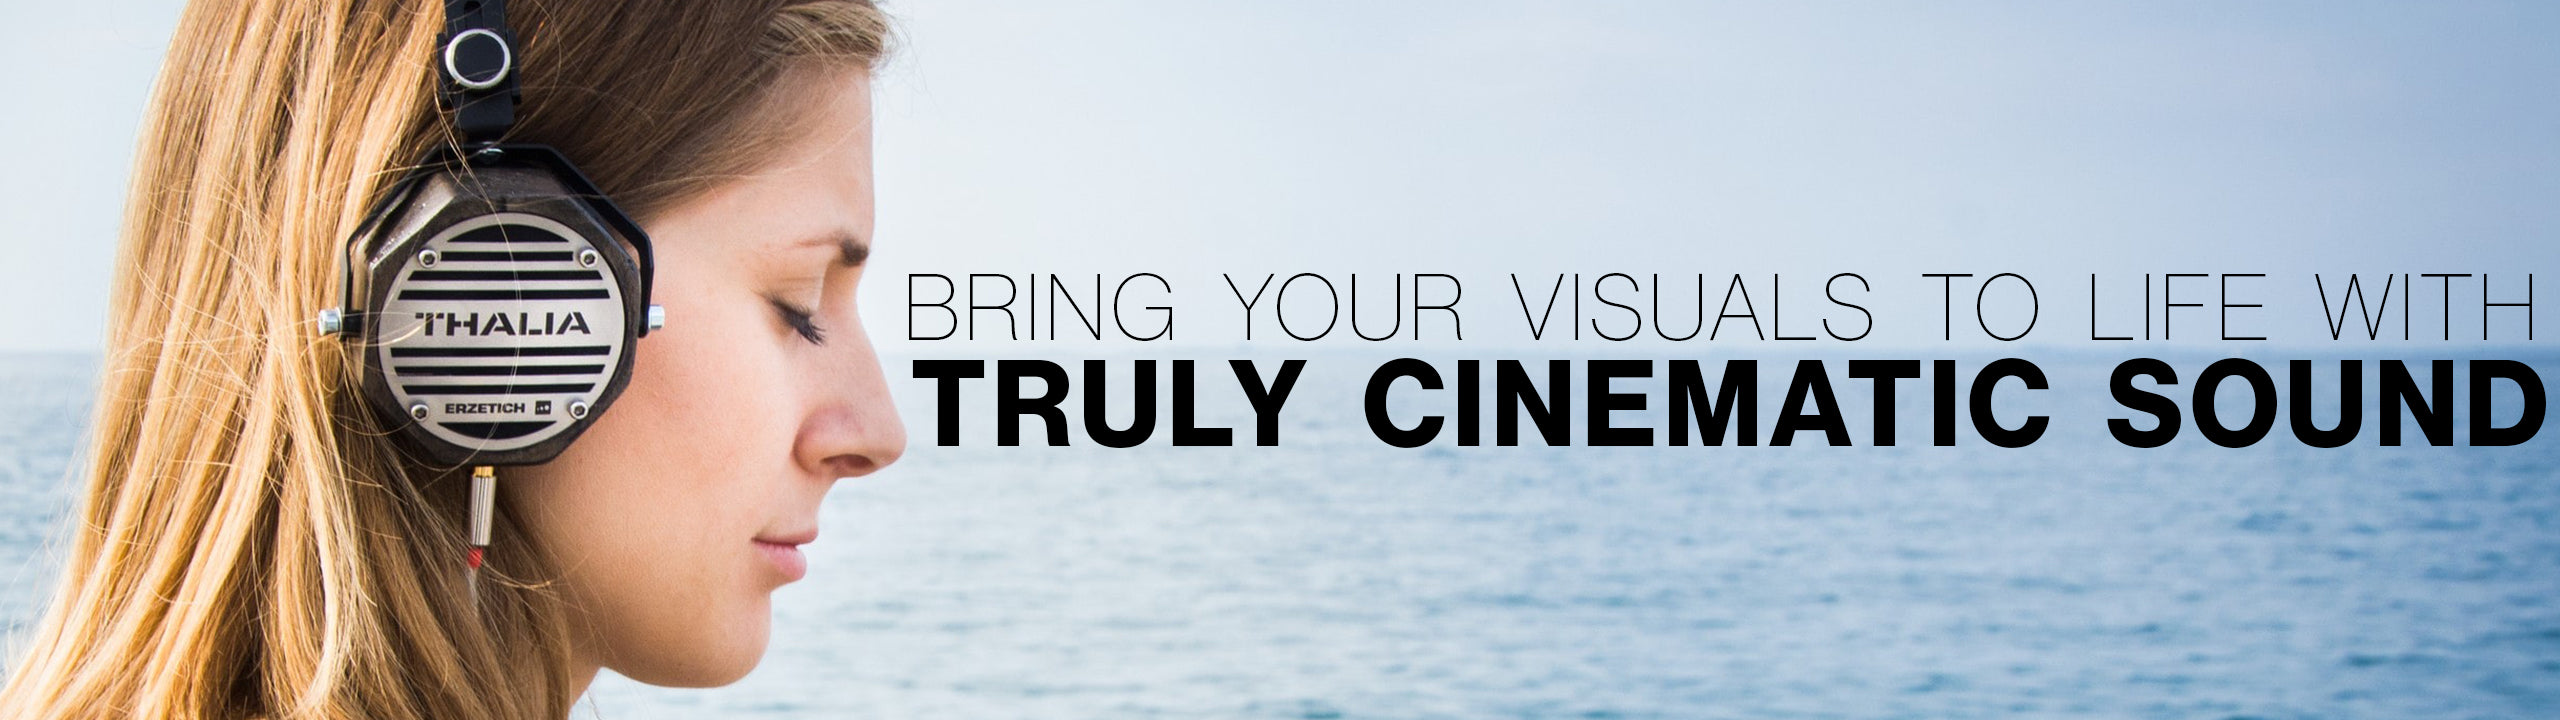 Bring your visuals to life with truly cinematic sound